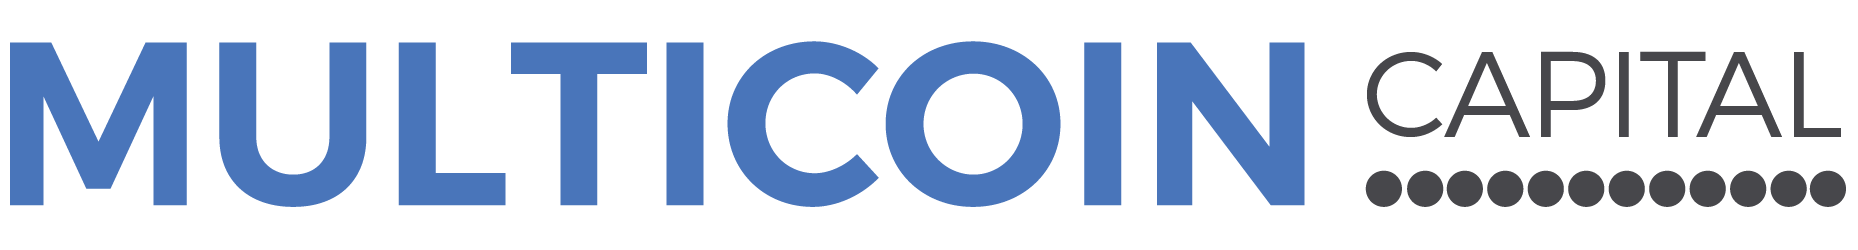 multicoincapital_logo_color.png